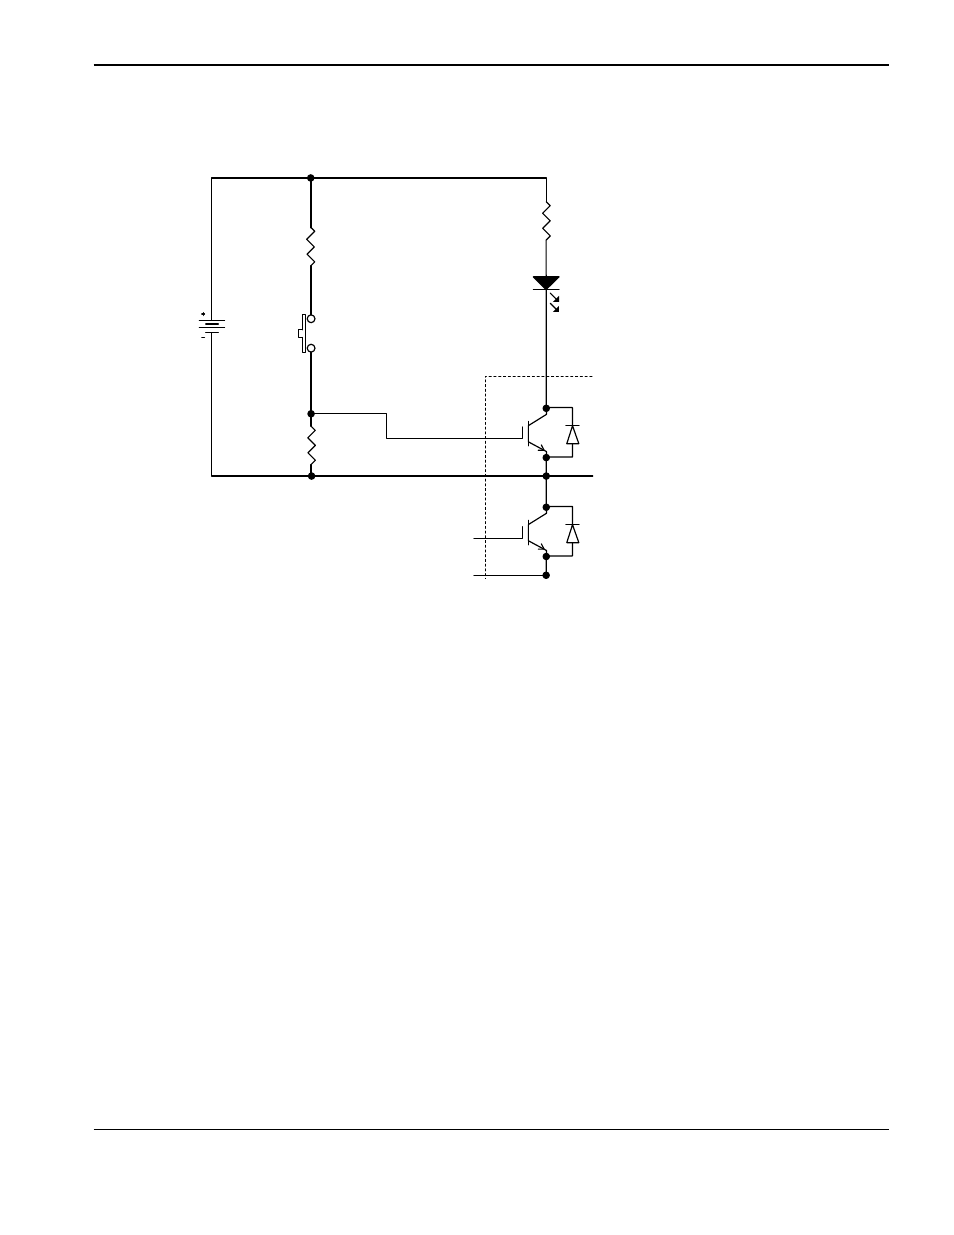 Igbt Tester Schematic Electrical Wiring Diagrams Free Download Diagram For Building An